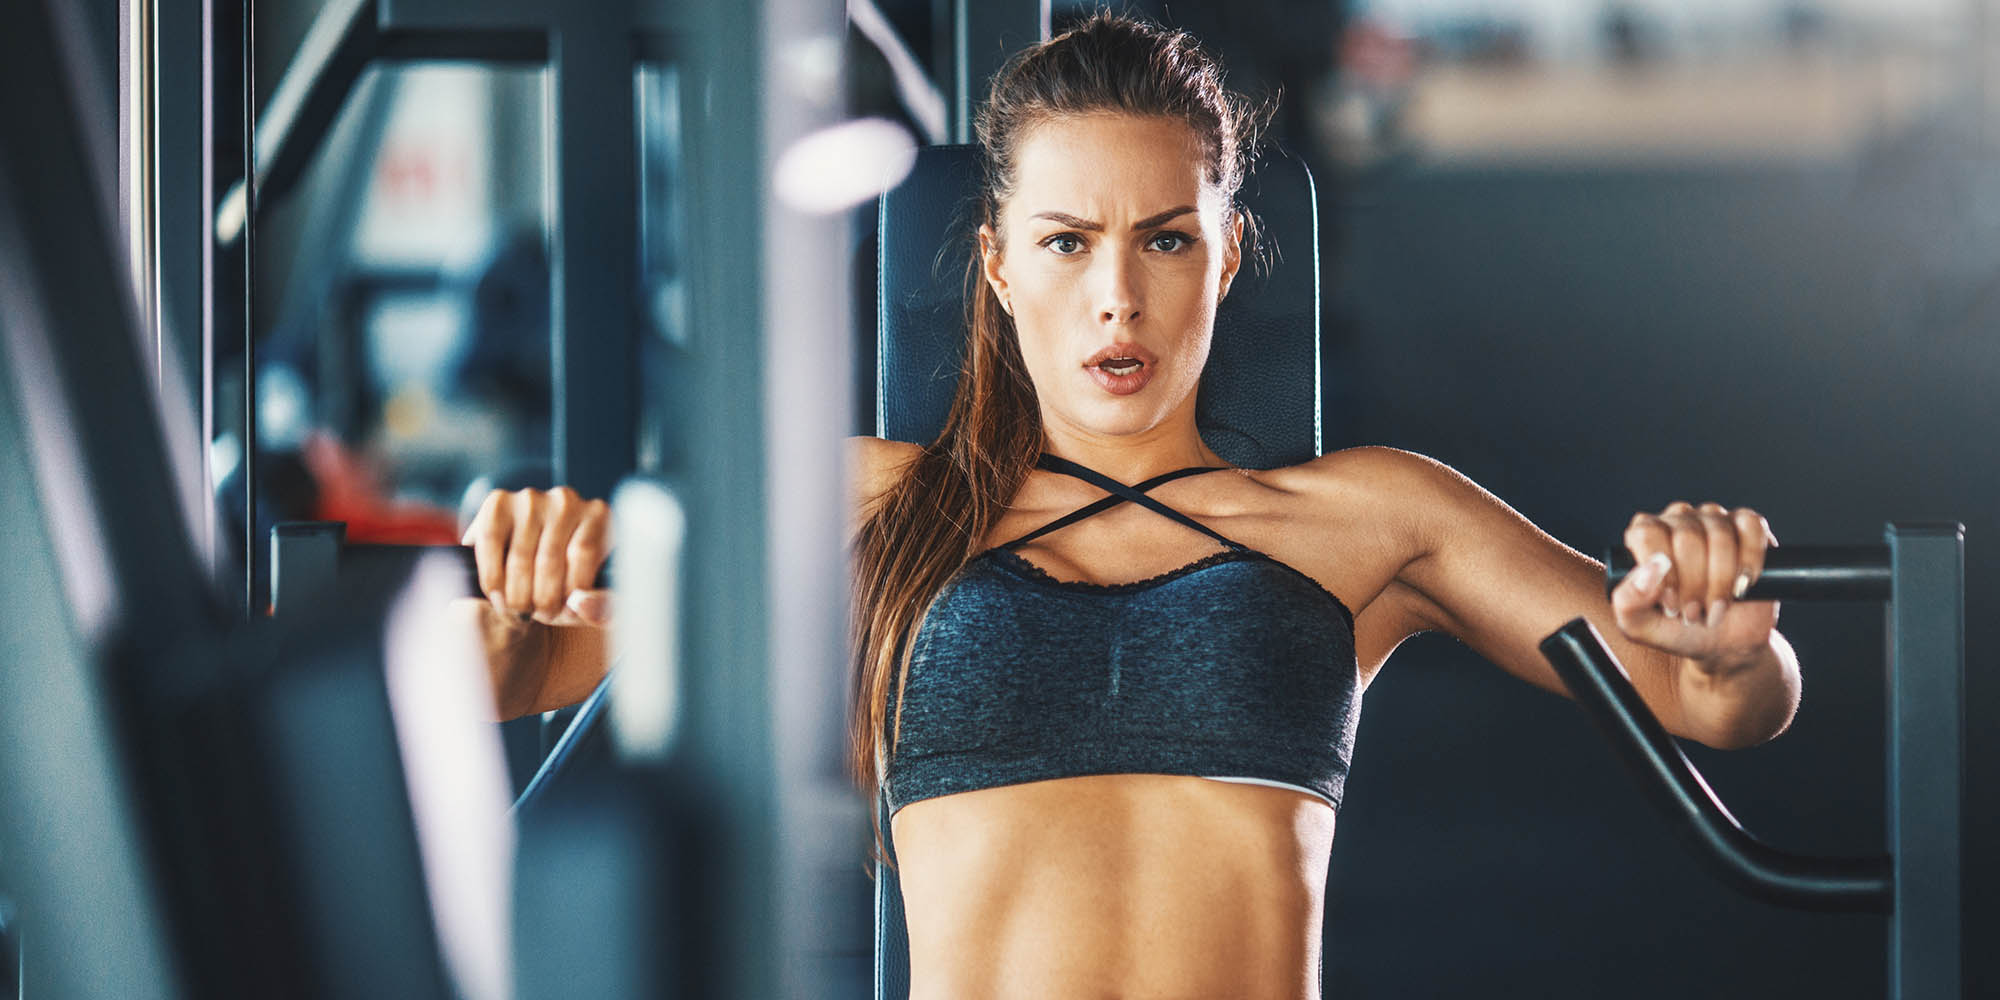 How to Improve Your Mental Strength to Push Through a Hard Workout